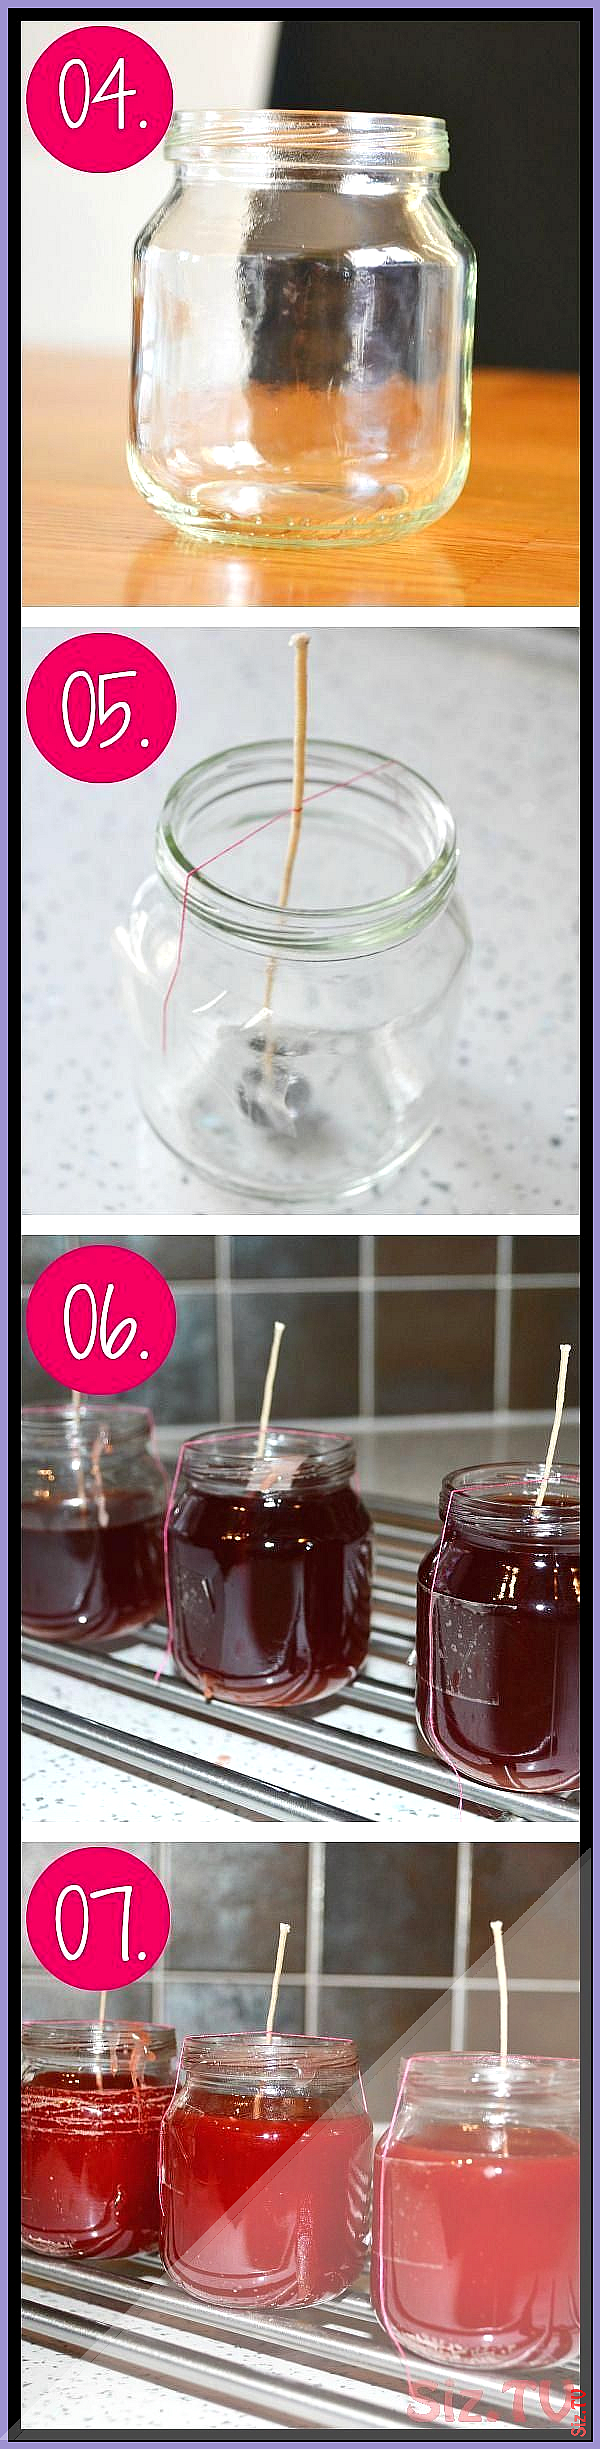 Learn how to Melt Your Old Candles and Make them into New ones I upcycled some Used Baby Food JarsPerfect size Leannes Blog www suggys co uk Learn how Learn how to Melt Y...